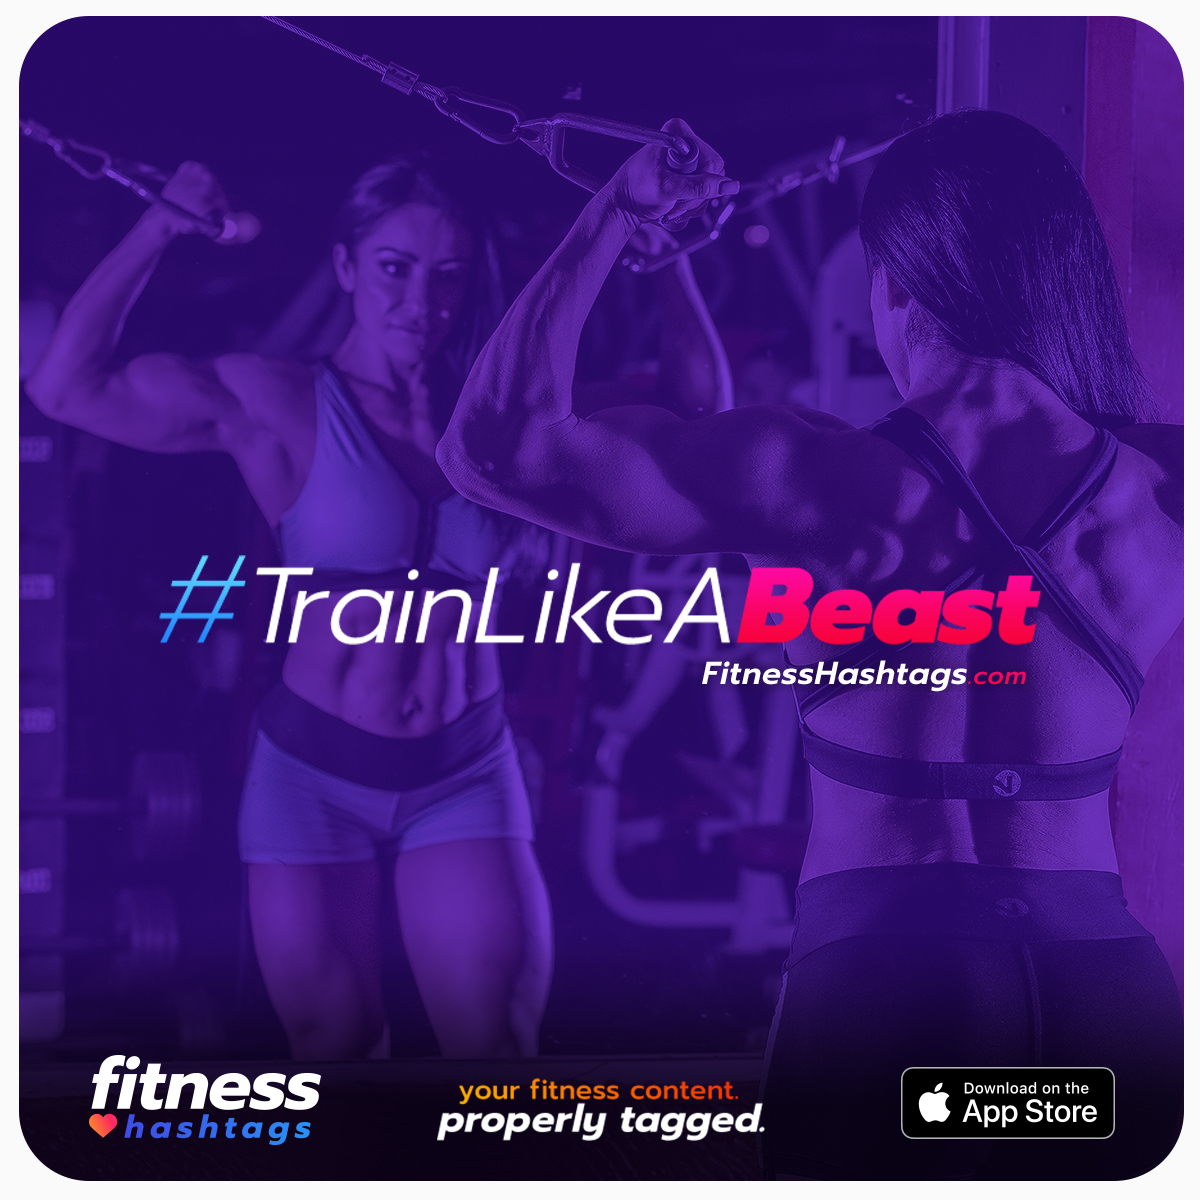 Tag your #Fitness content in half the time. Free & updated often! App Store link:  https:// apple.co/2x6phgR       #SundayThoughts #motivation #Sundaymotivation #gyminspiration #fitnesstransformation #saints #bodybuilding #Powerlifting #EatClean #LiftHeavy #TrainLikeABeast <br>http://pic.twitter.com/HnDtzZnjMi